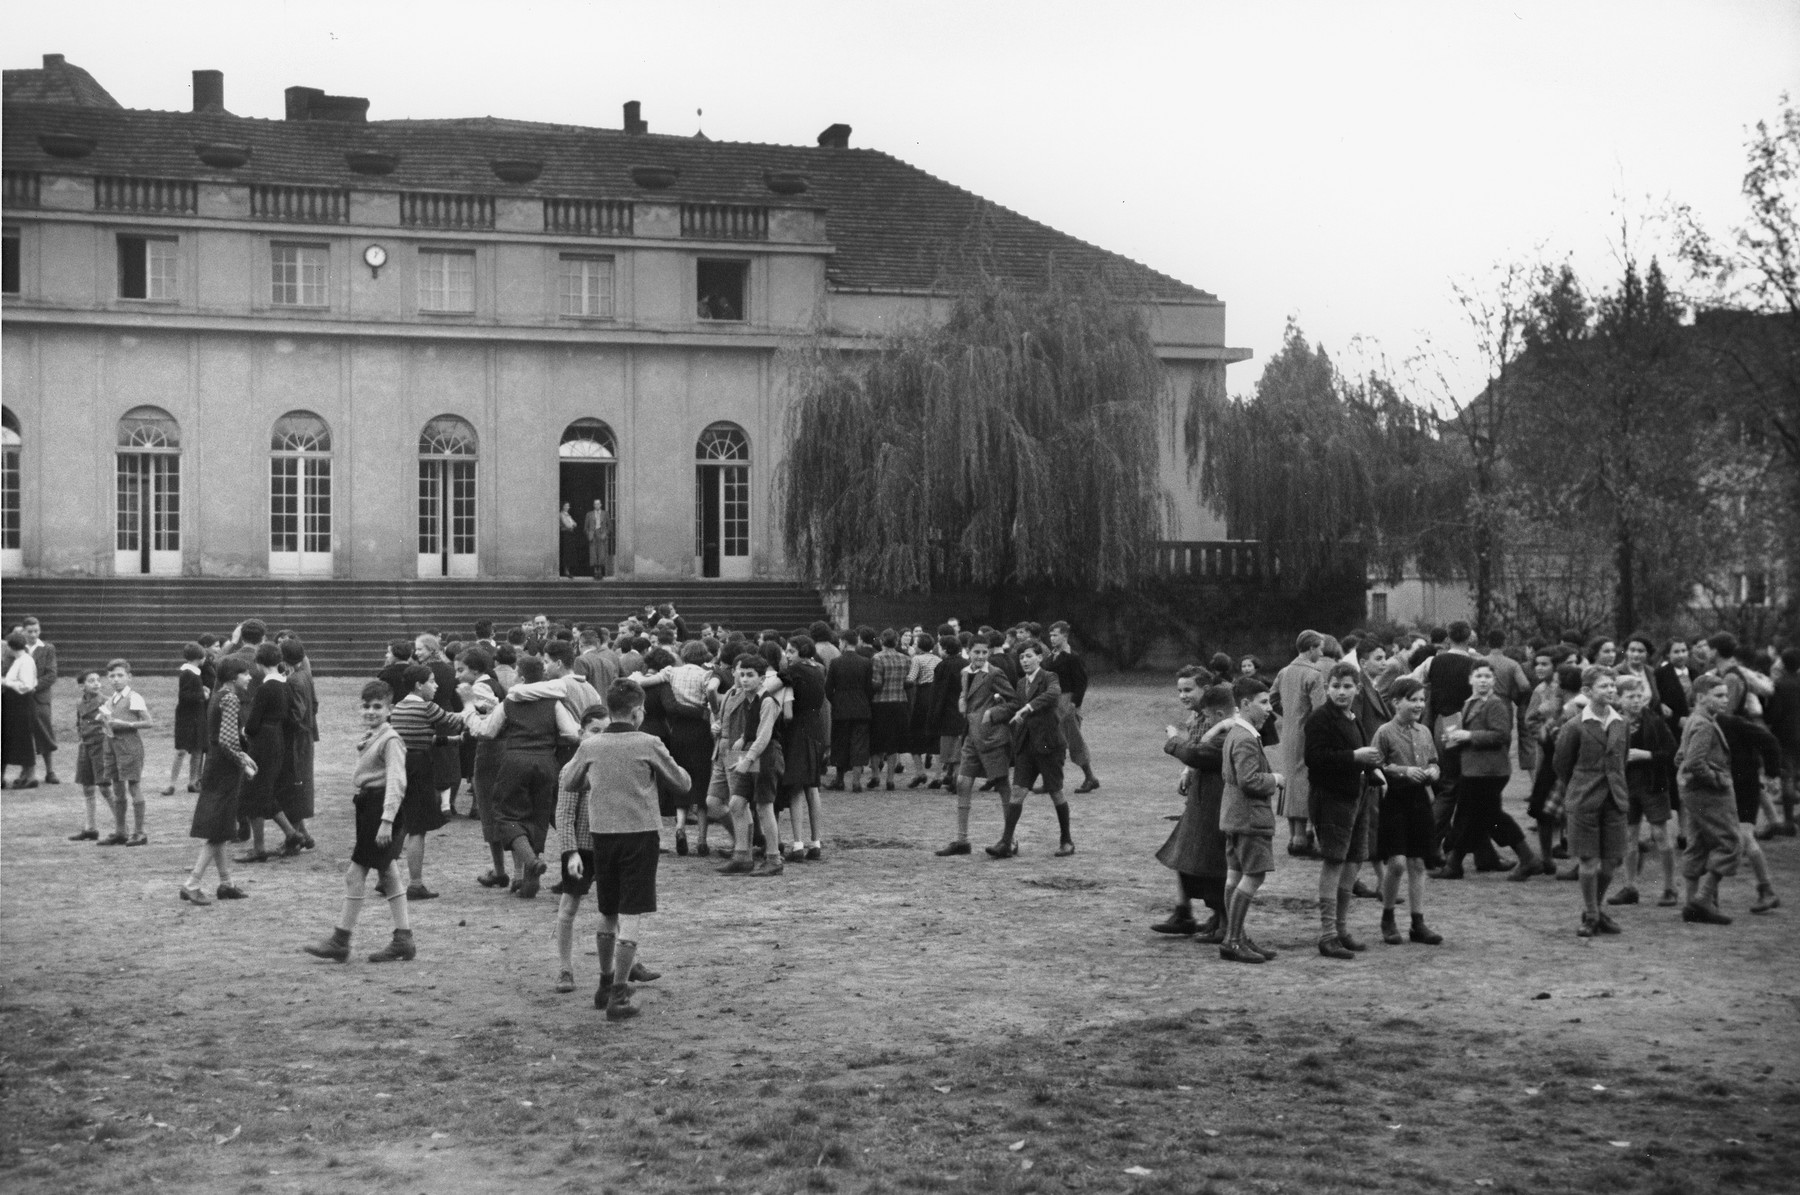 Teenage boys and girls stand outside on the grounds of the Goldschmidt Jewish private school in Berlin-Grunewald.